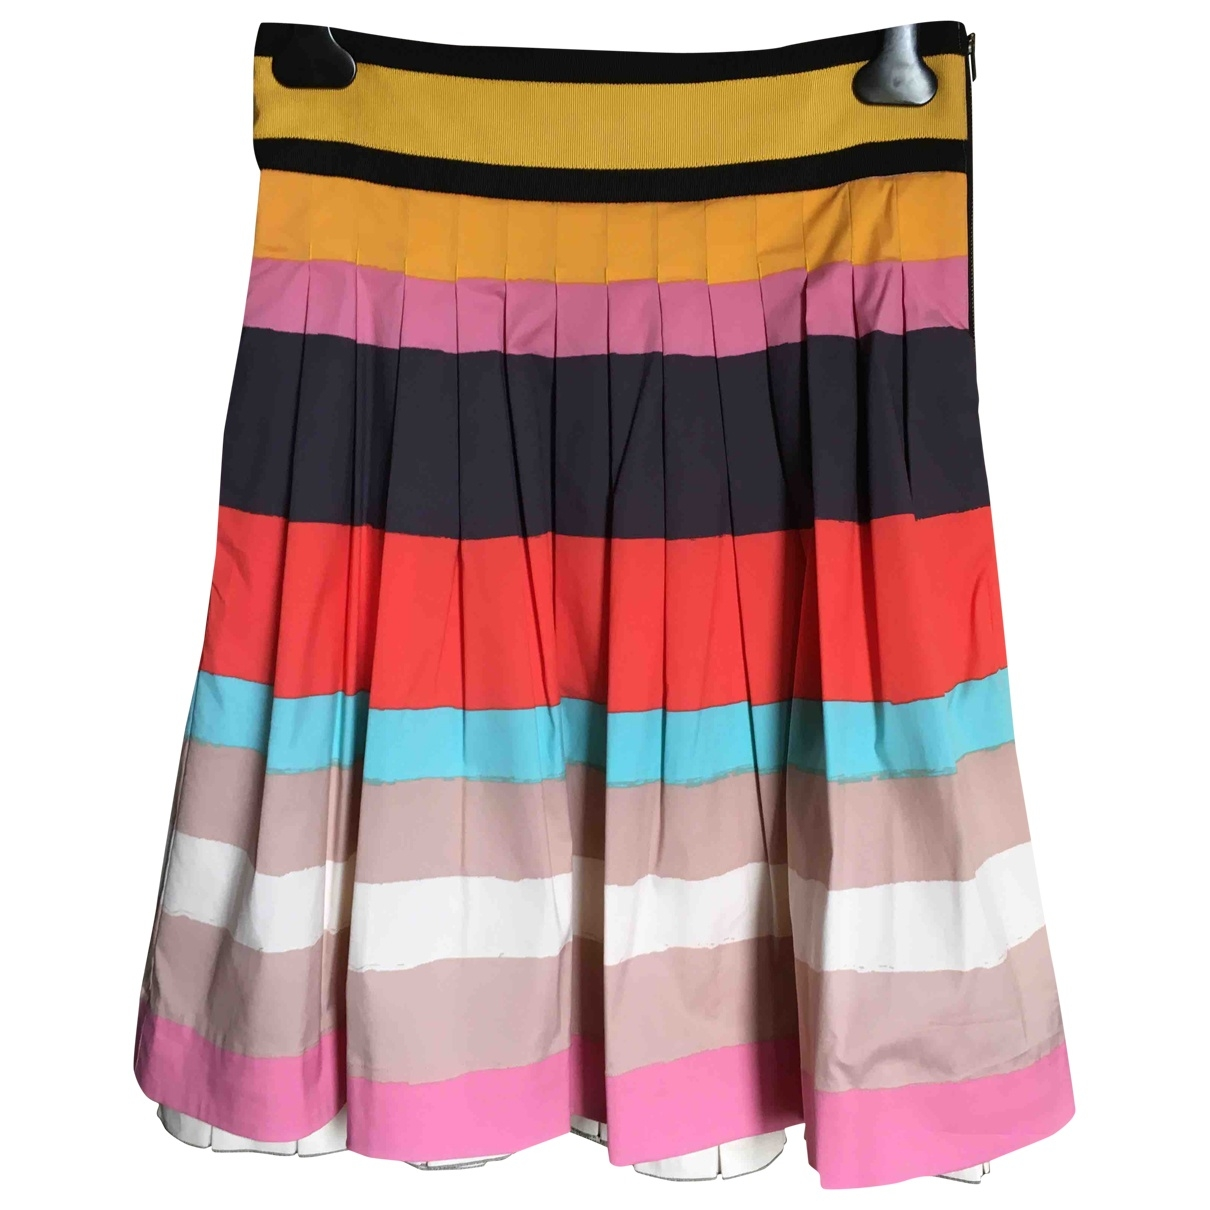 Diane Von Furstenberg \N Multicolour Cotton skirt for Women 8 US